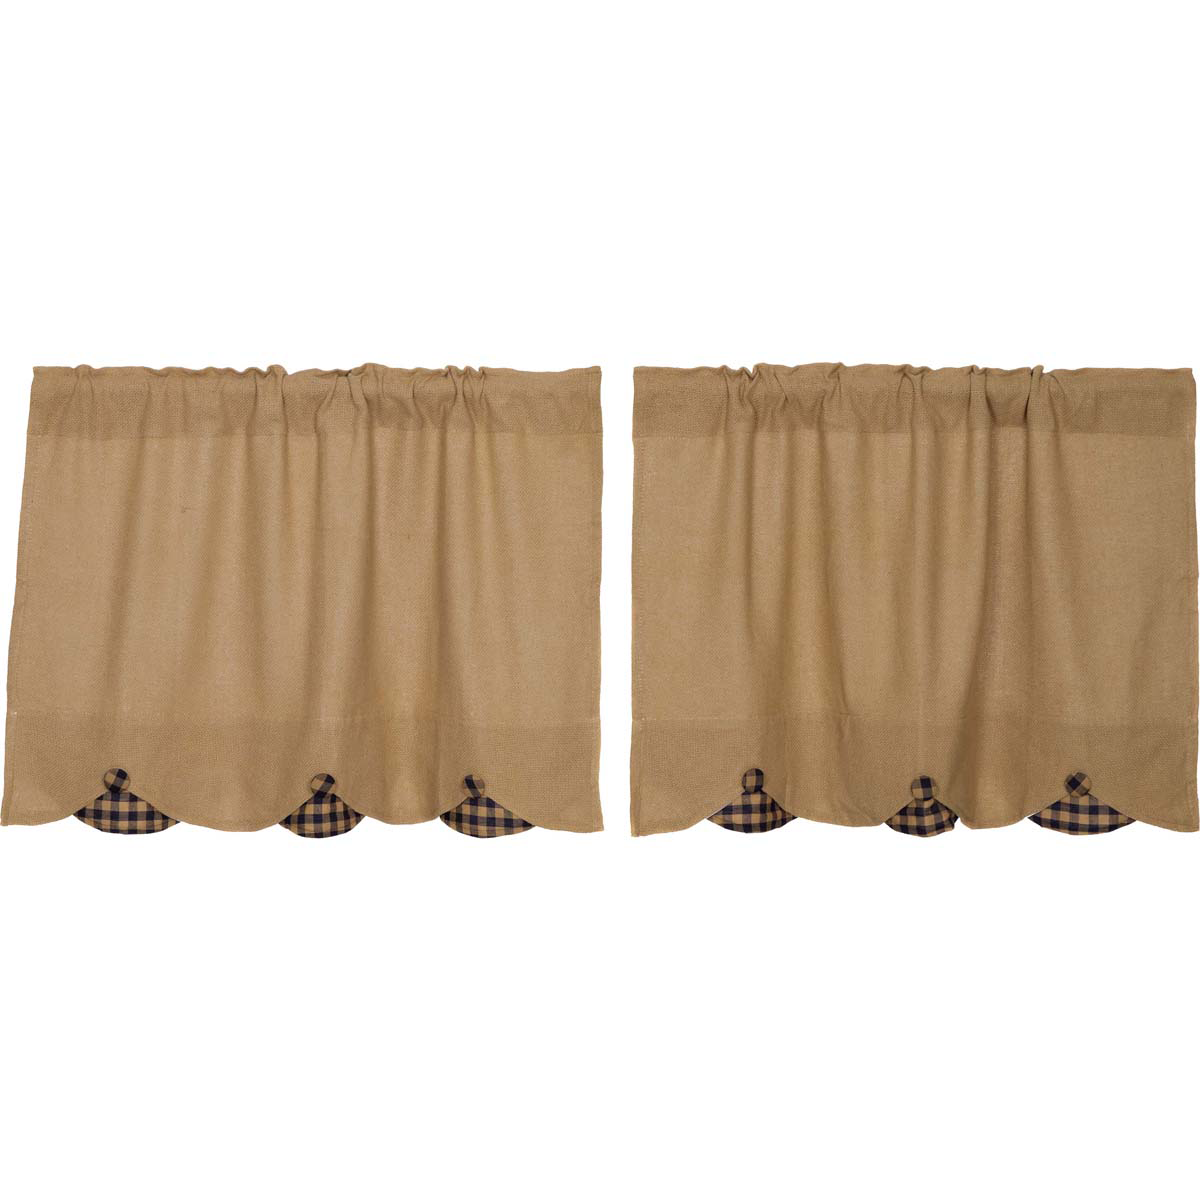 Burlap w/Navy Check Scalloped Tier Set of 2 L24xW36